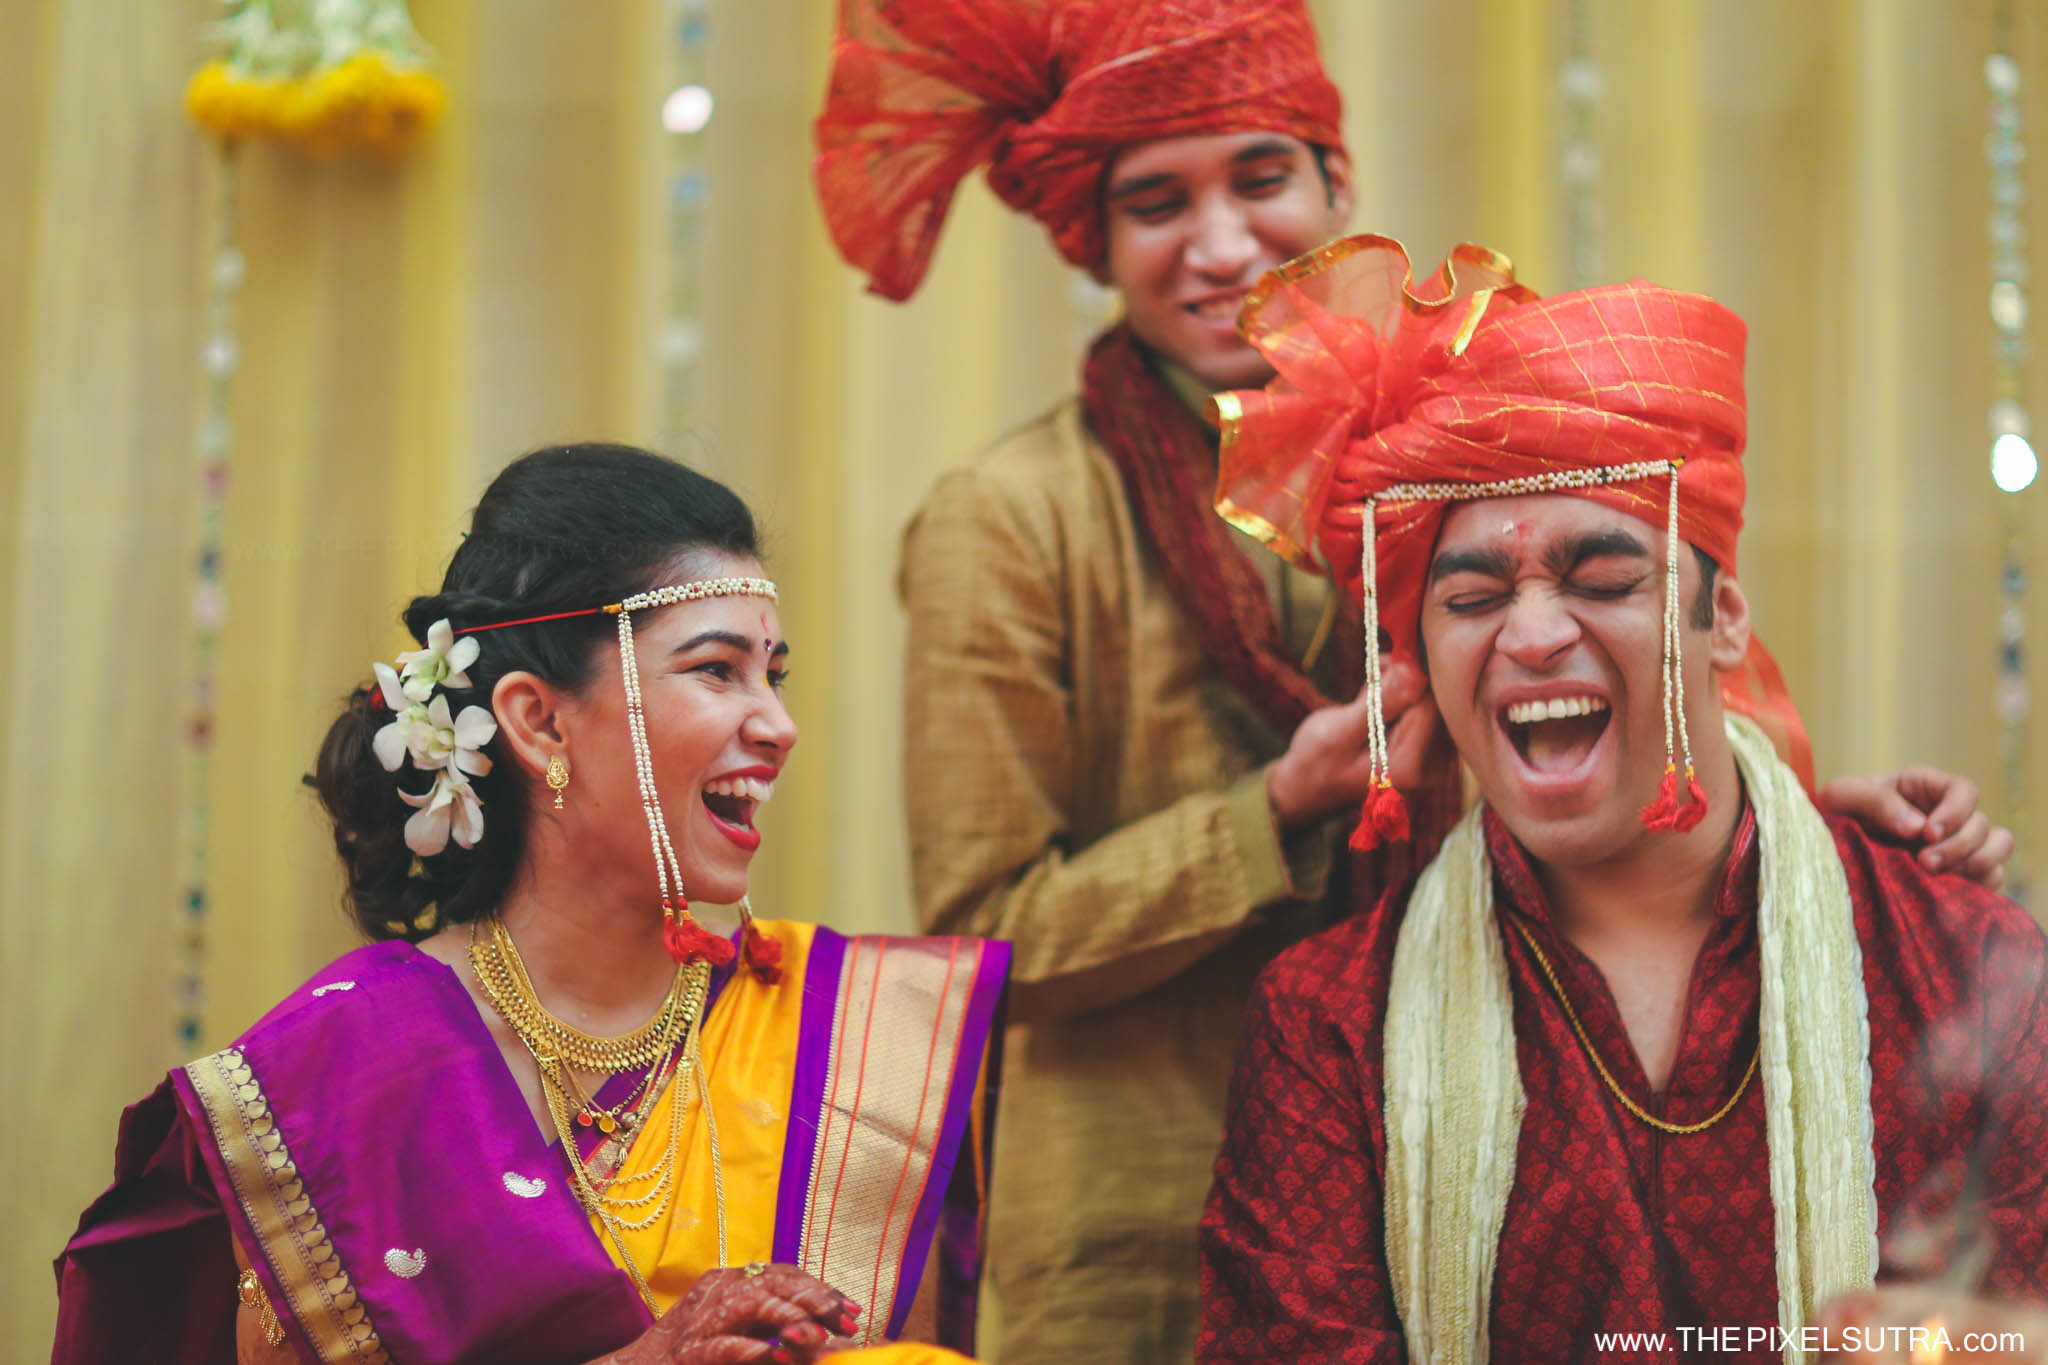 The Pixel Sutra Nachiket x Priyanka Candid Wedding photographer Mumbai Best  (41).jpg